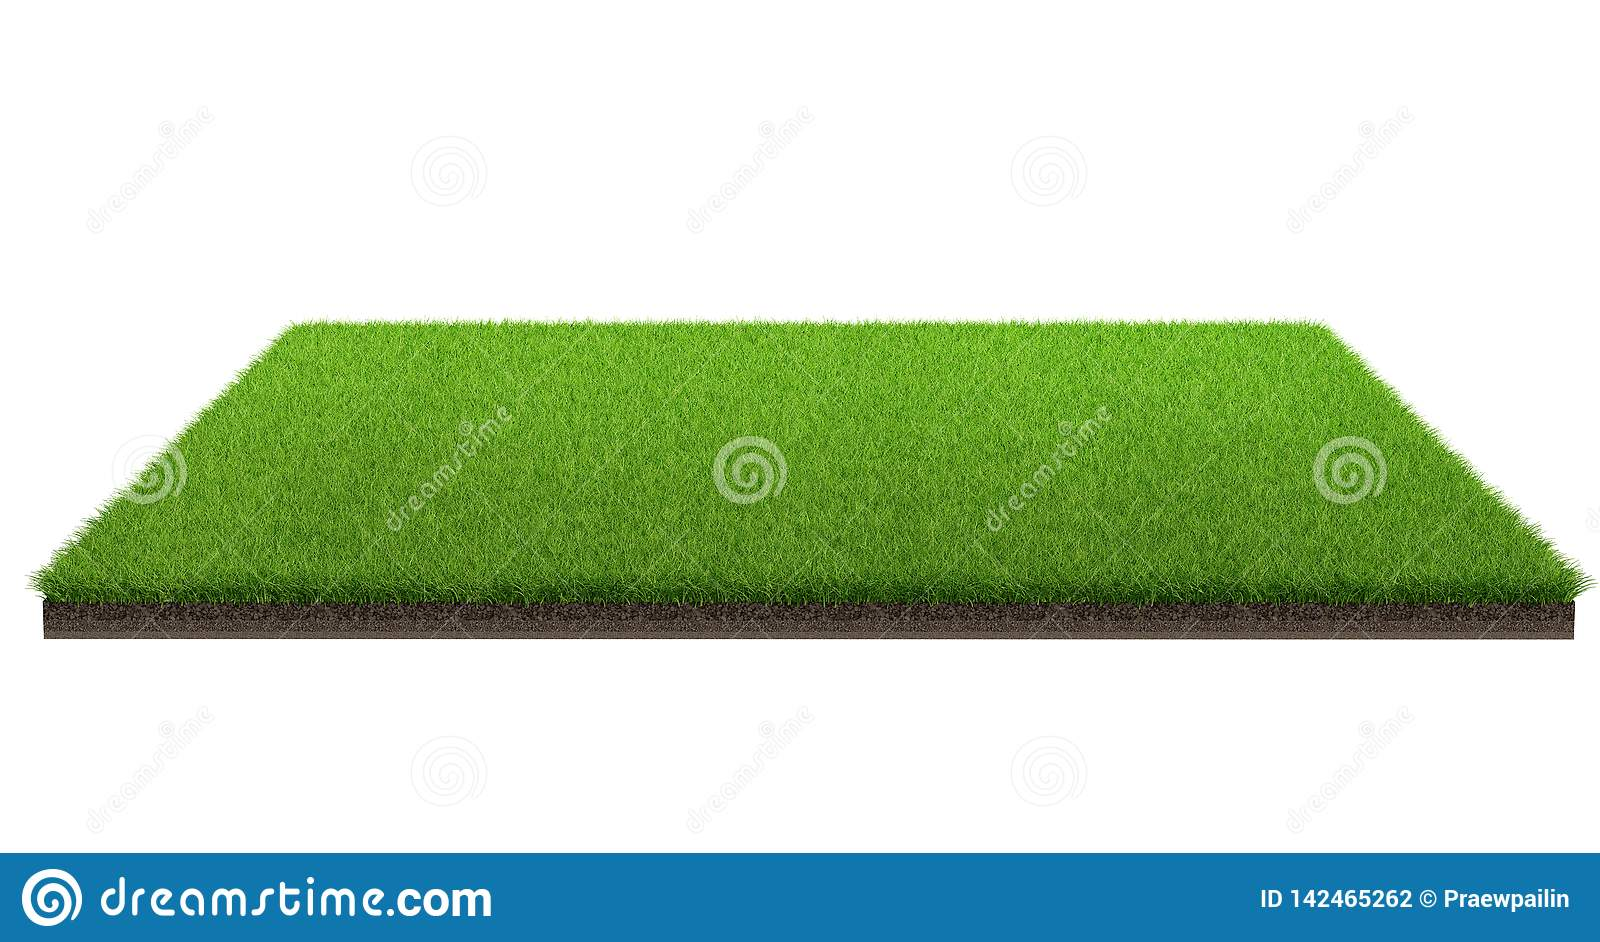 3d rendering of green grass field isolated on a white background with clipping path. Sports field